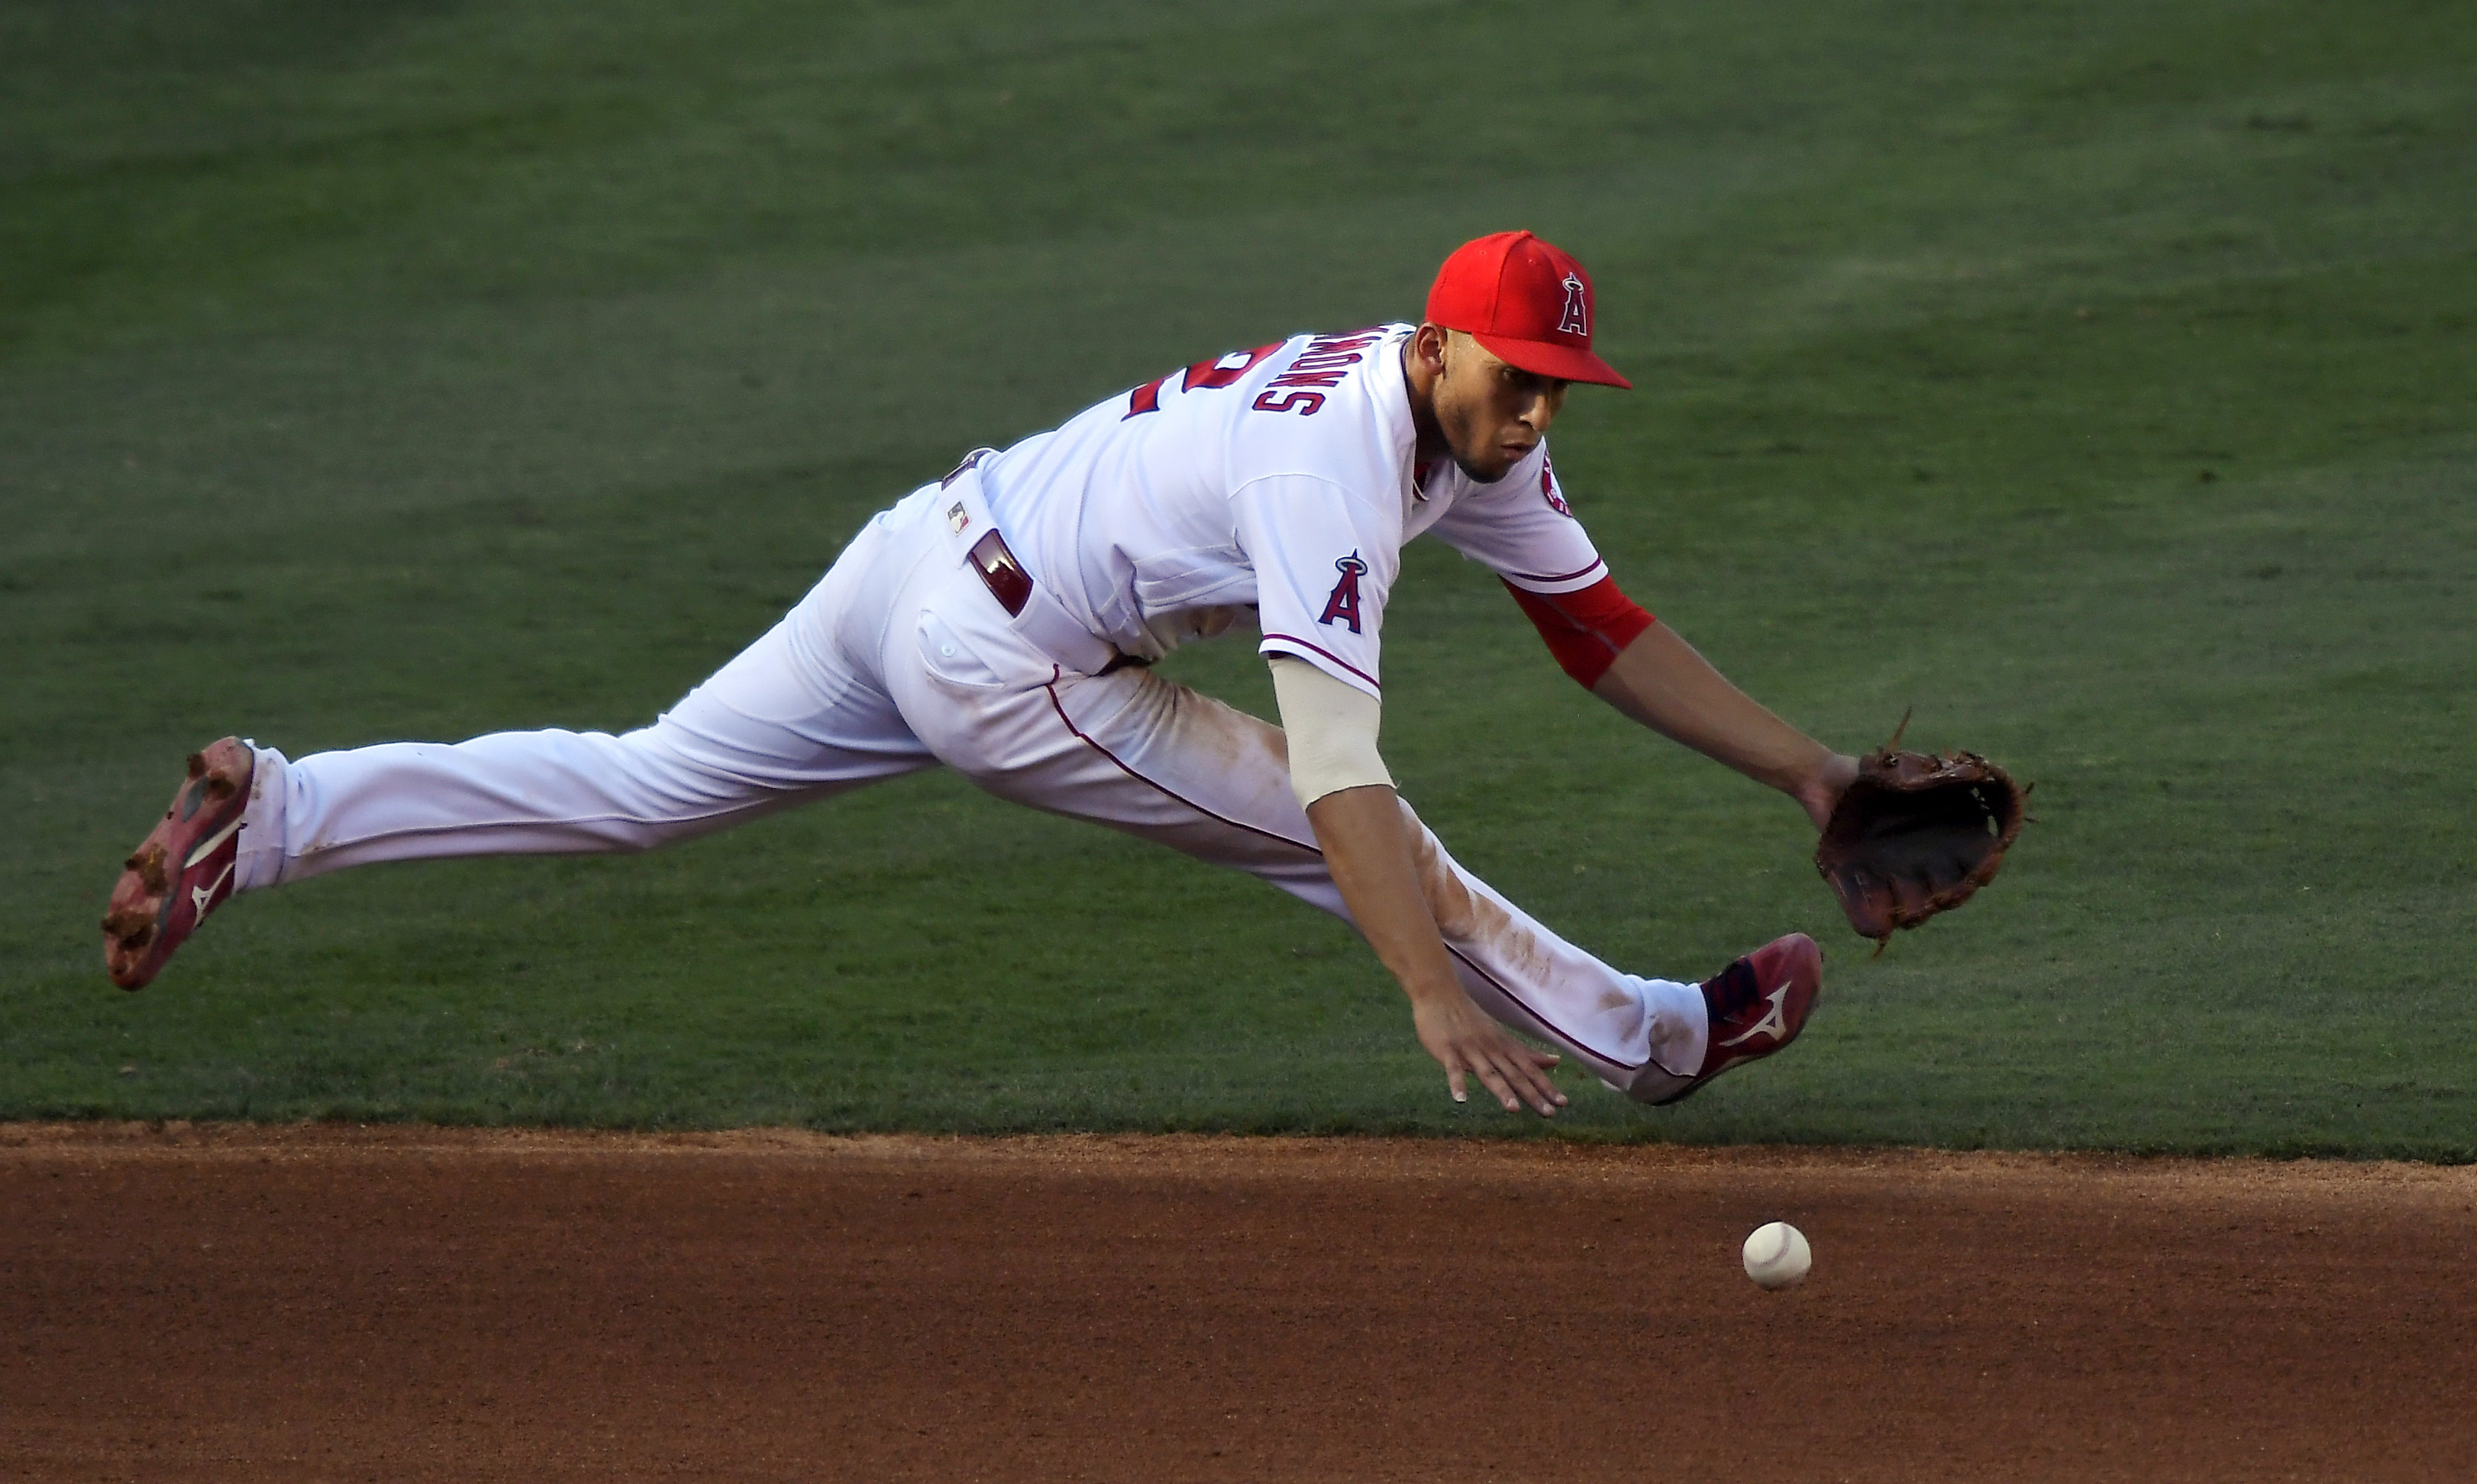 Los Angeles Angels shortstop Andrelton Simmons fields a ball hit for a single by Cincinnati Reds' Adam Duvall during the fourth inning of a baseball game, Wednesday, Aug. 31, 2016, in Anaheim, Calif. (AP Photo/Mark J. Terrill)